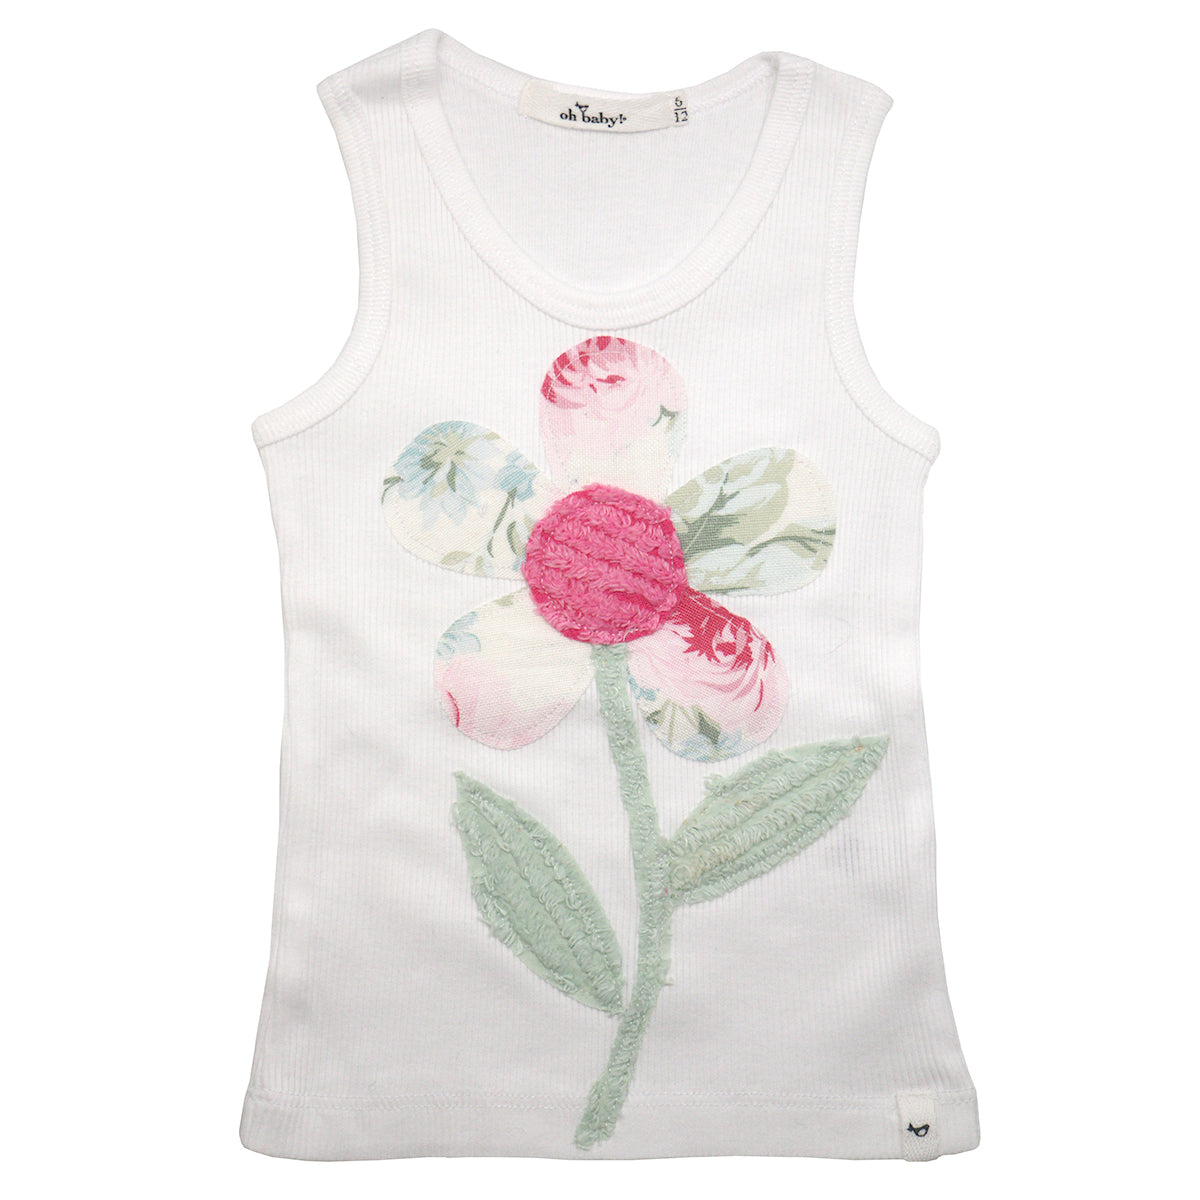 f207c39a6 oh baby! Anniversary Vintage Flower Tank Top - Size 6-12 Months